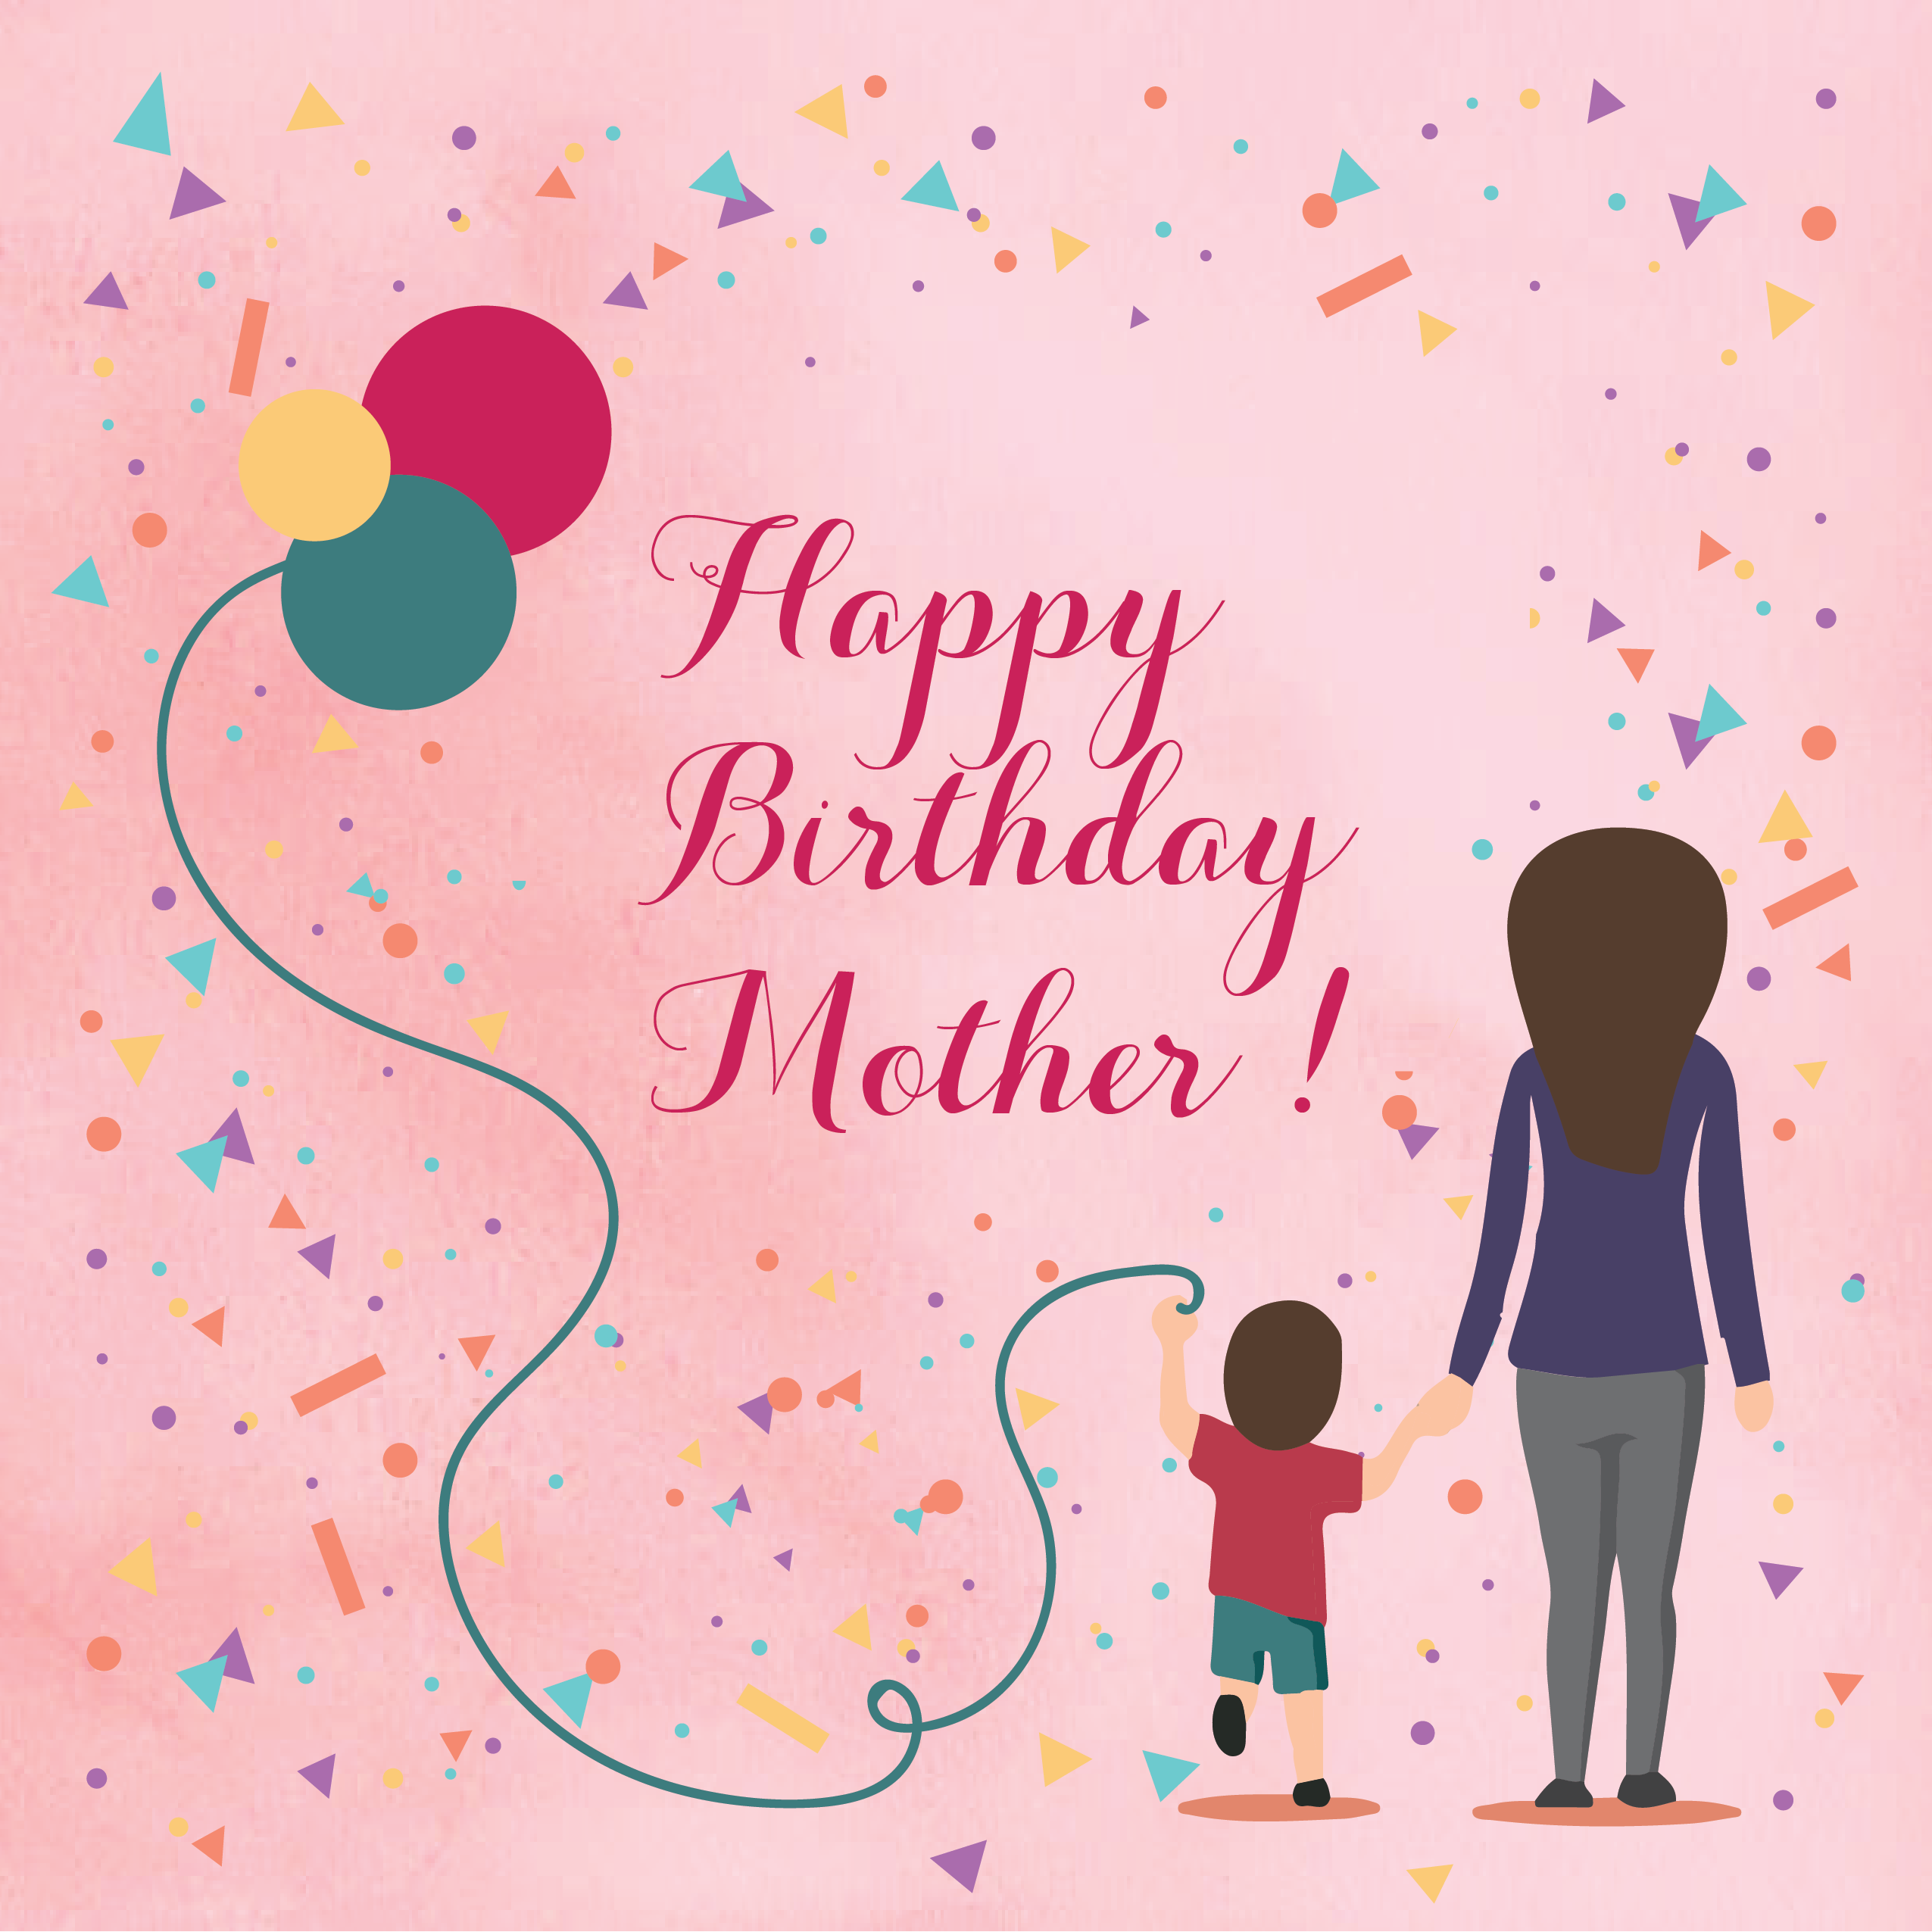 Happy Birthday Wishes Mother